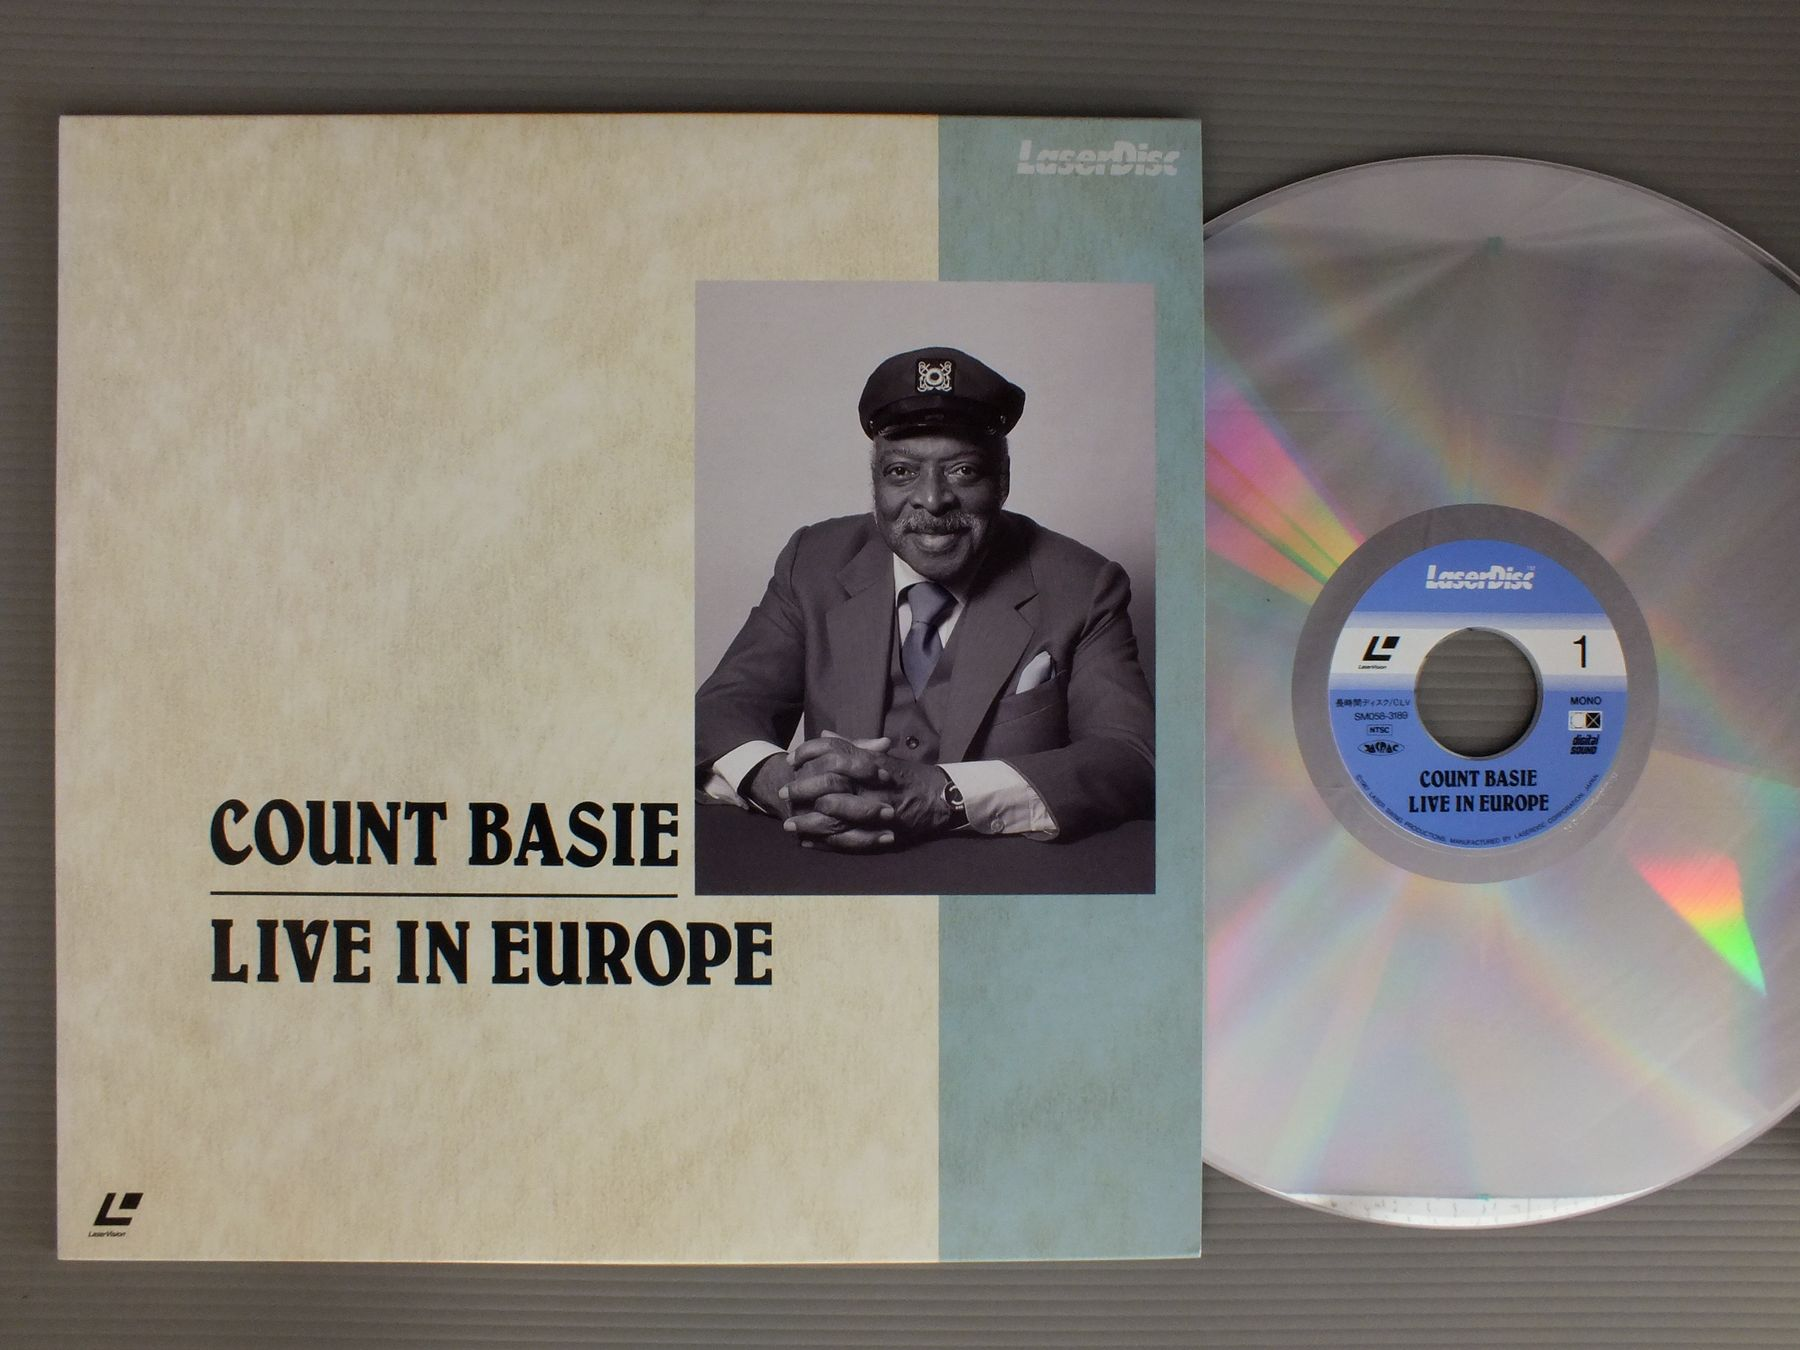 COUNT BASIE - LIVE IN EUROPE - Laser Disc